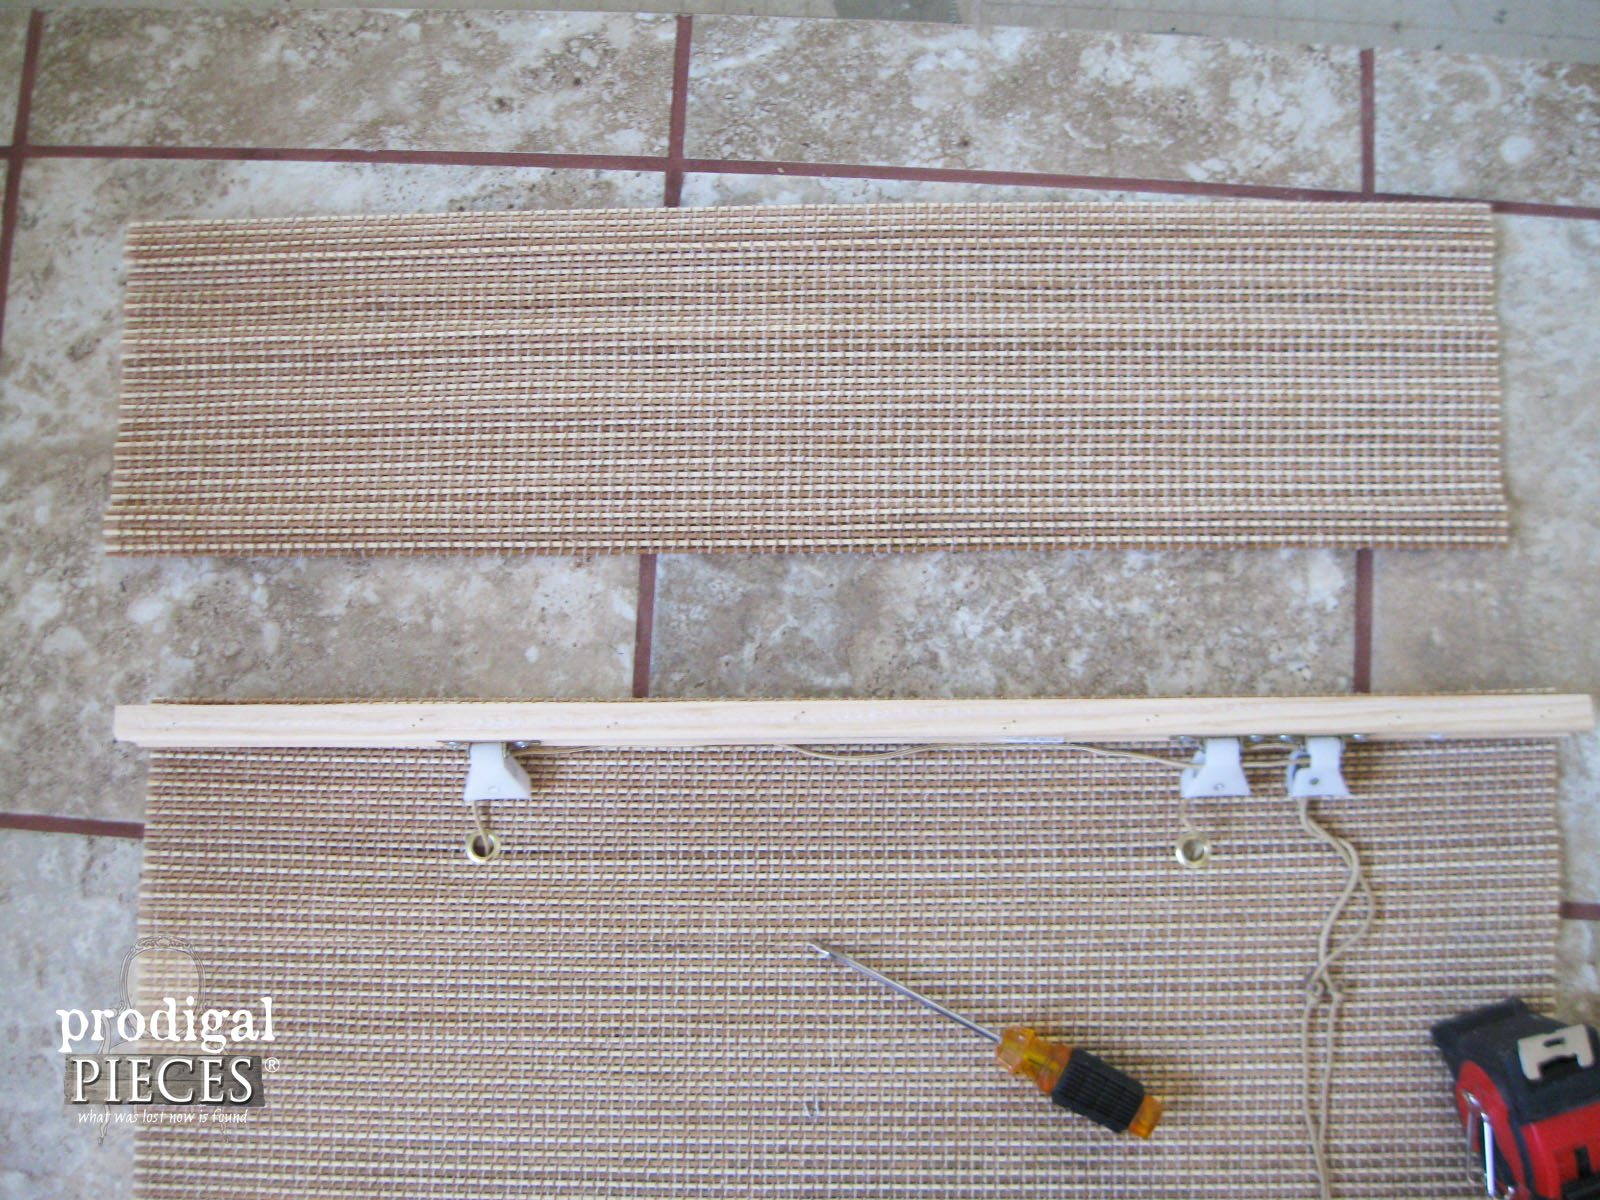 Bamboo Valance Removed for Window Treatment | Prodigal Pieces | www.prodigalpieces.com